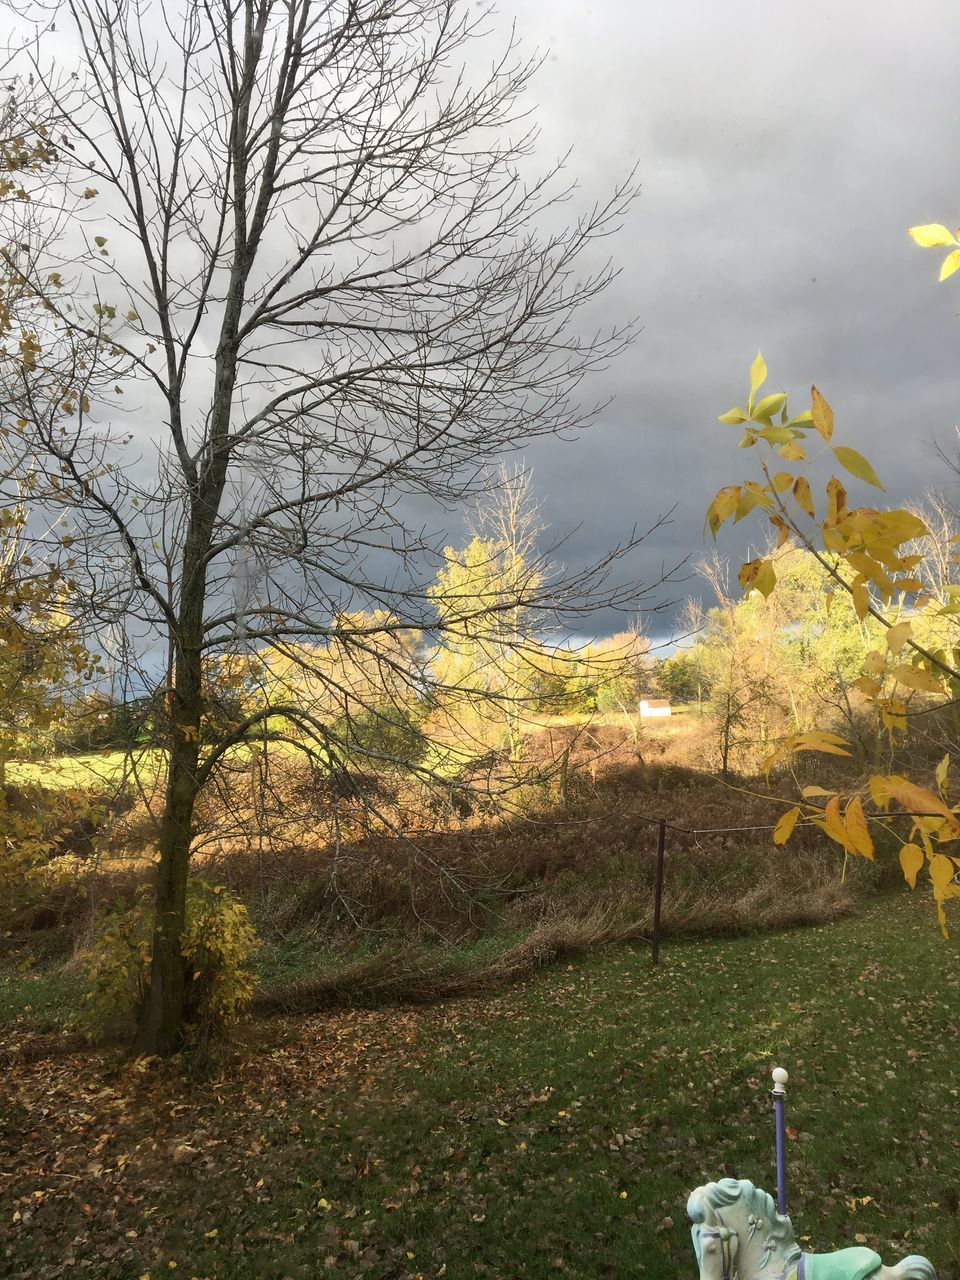 tree, nature, autumn, beauty in nature, tranquility, tranquil scene, scenics, change, outdoors, day, branch, leaf, growth, no people, landscape, field, bare tree, grass, sky